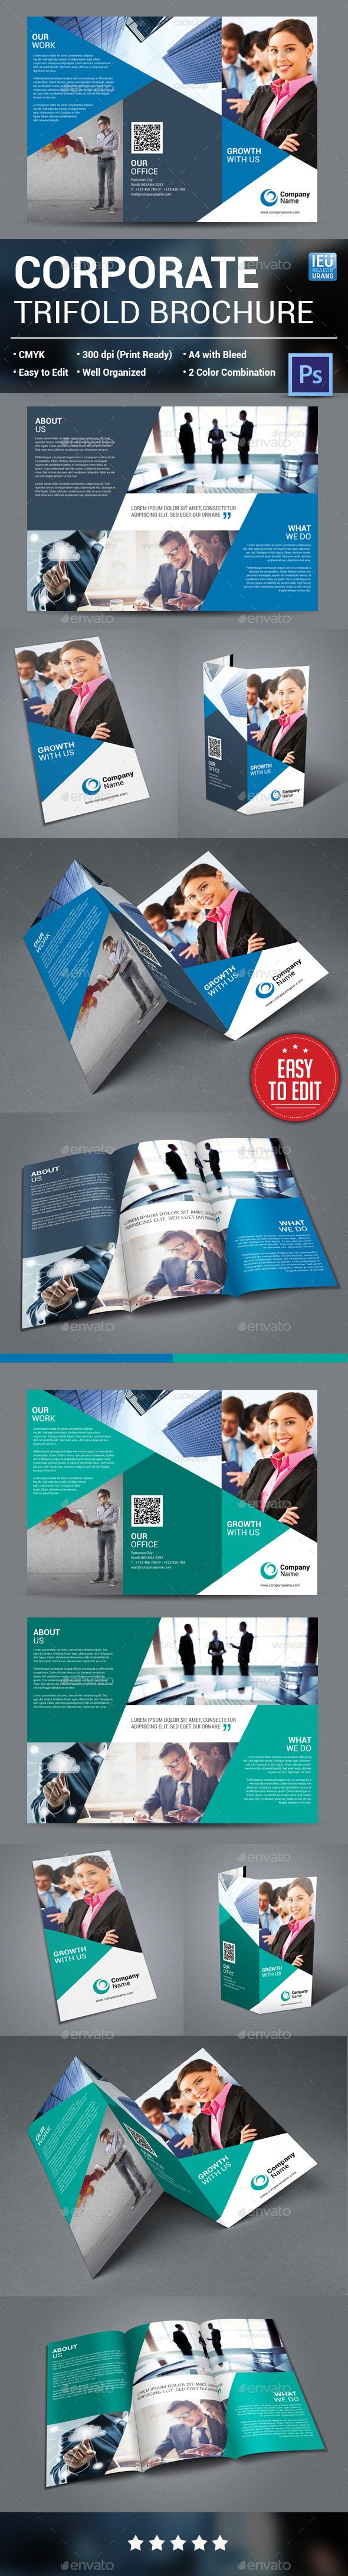 Corporate Trifold Brochure Template PSD #design Download: http://graphicriver.net/item/corporate-trifold-brochure/13948676?ref=ksioks